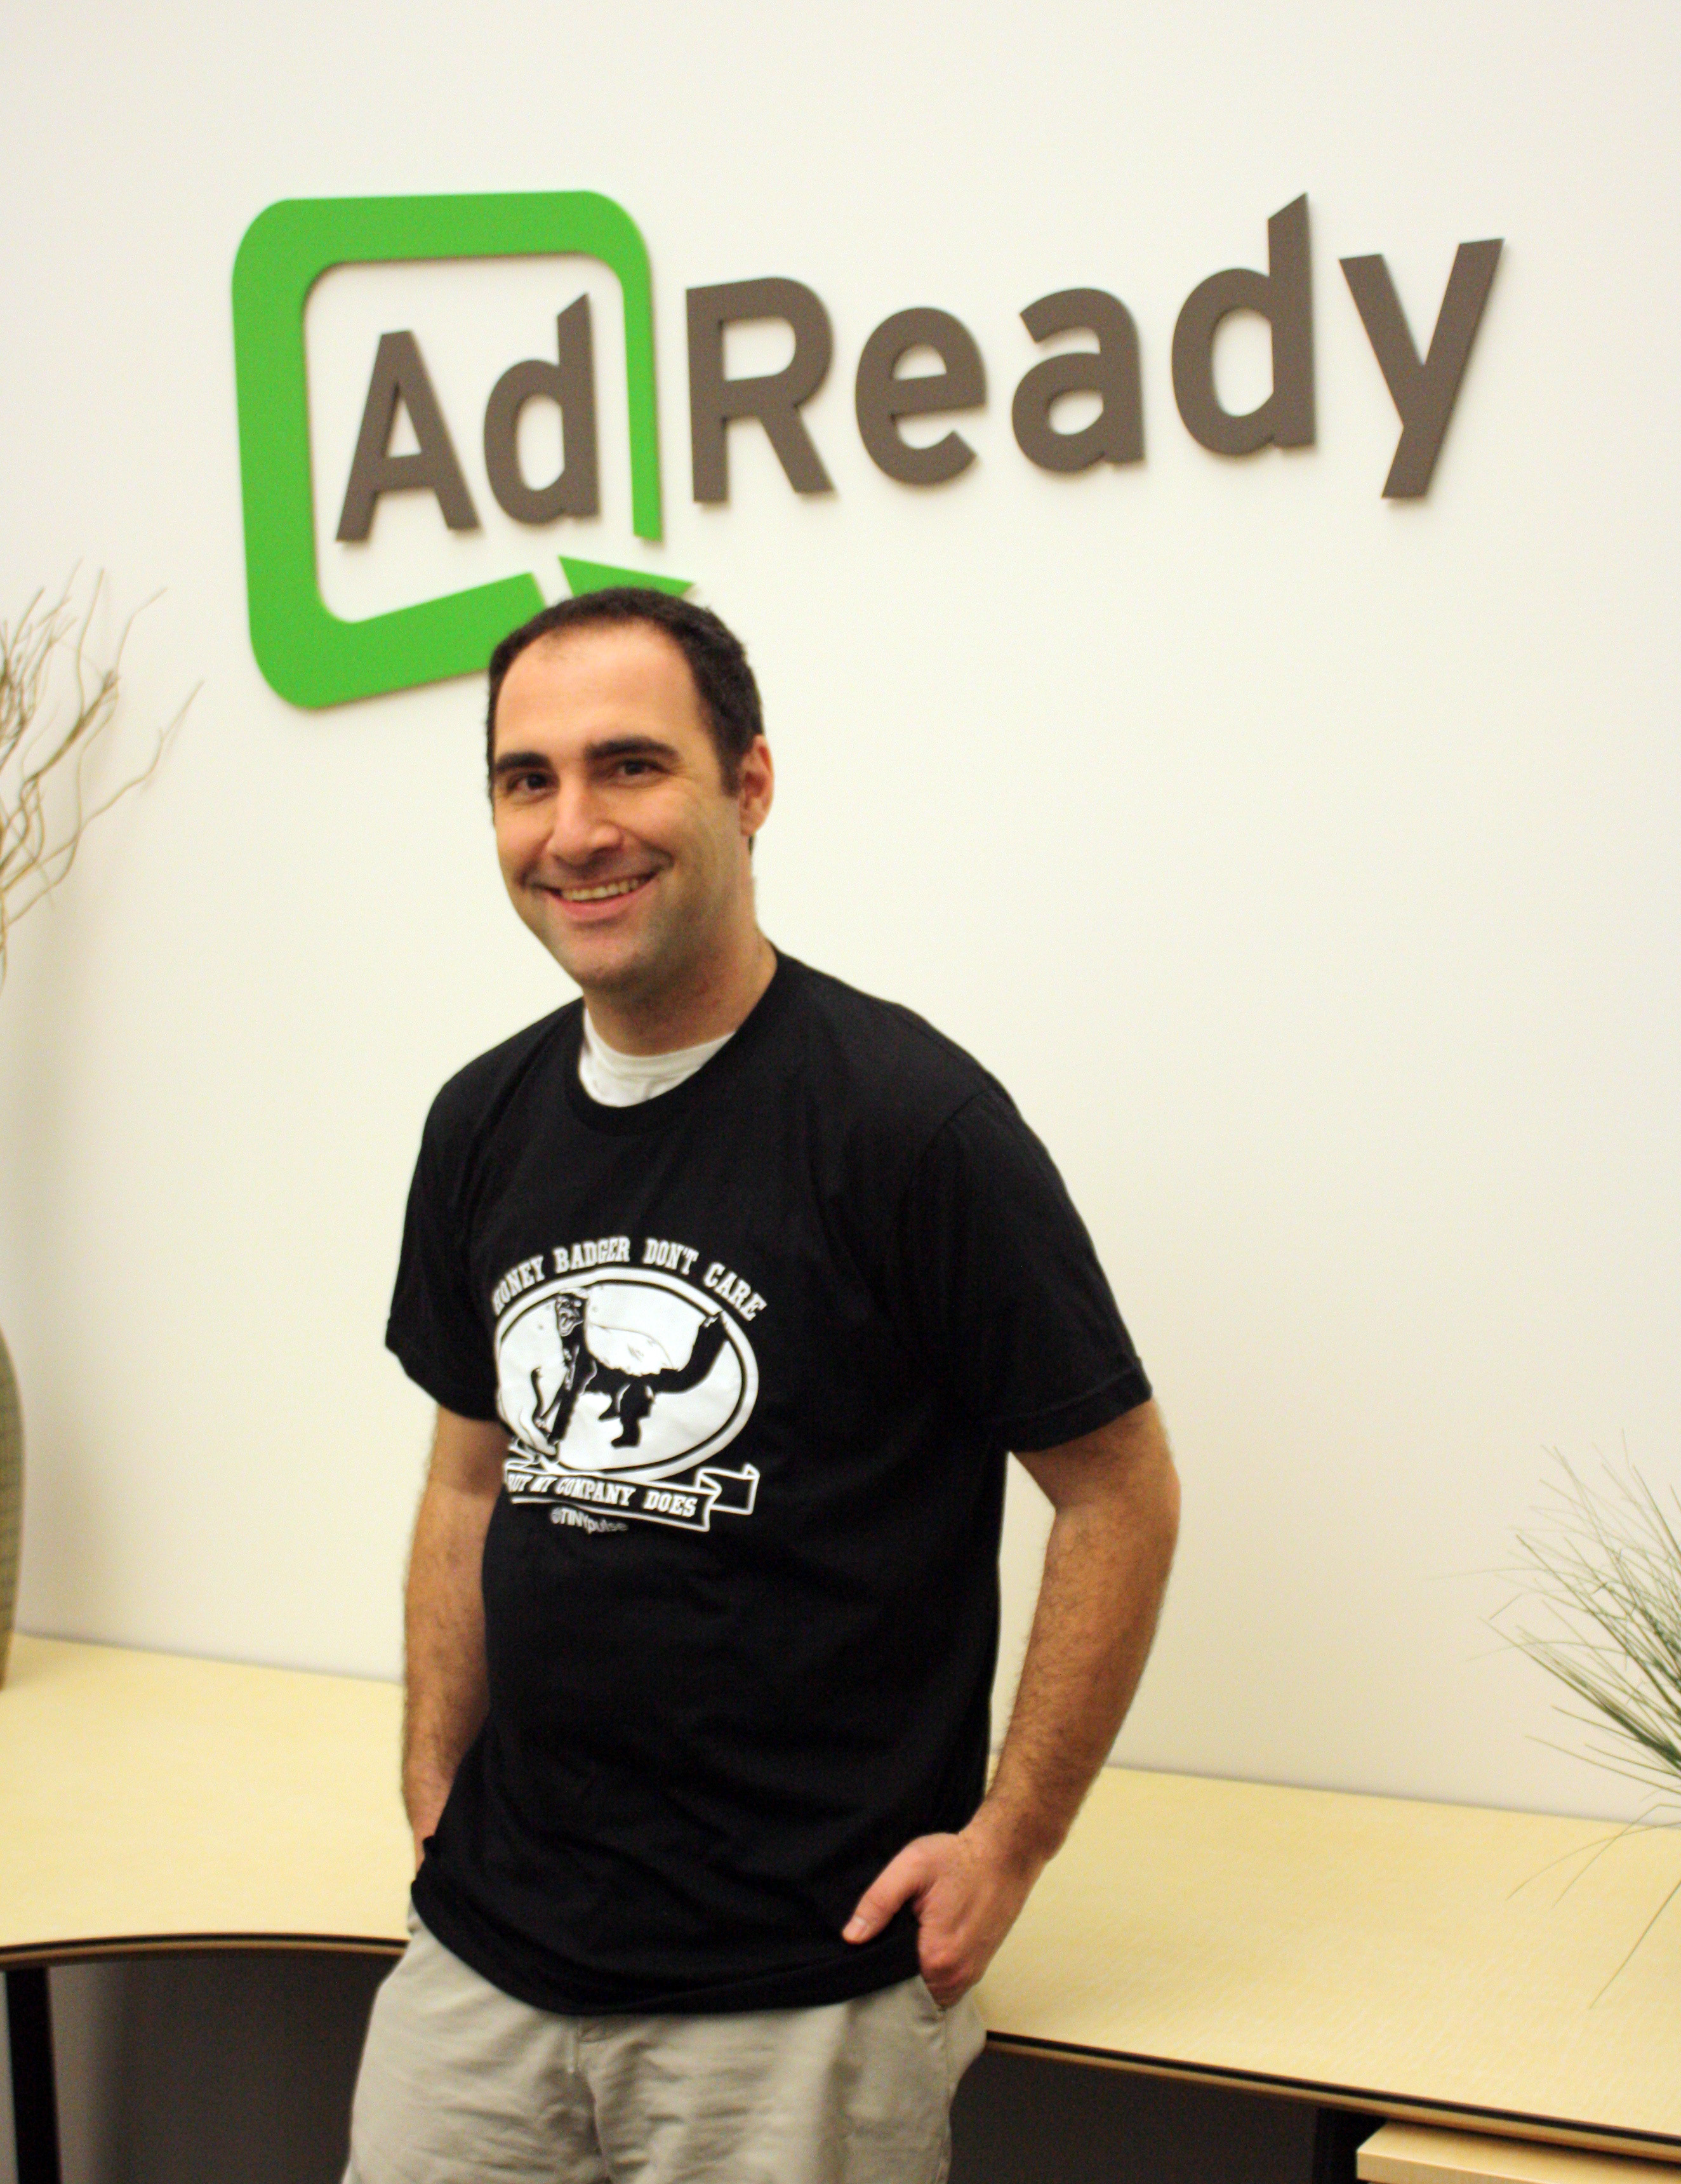 AdReady CEO Honey Badger TINYpulse shirt